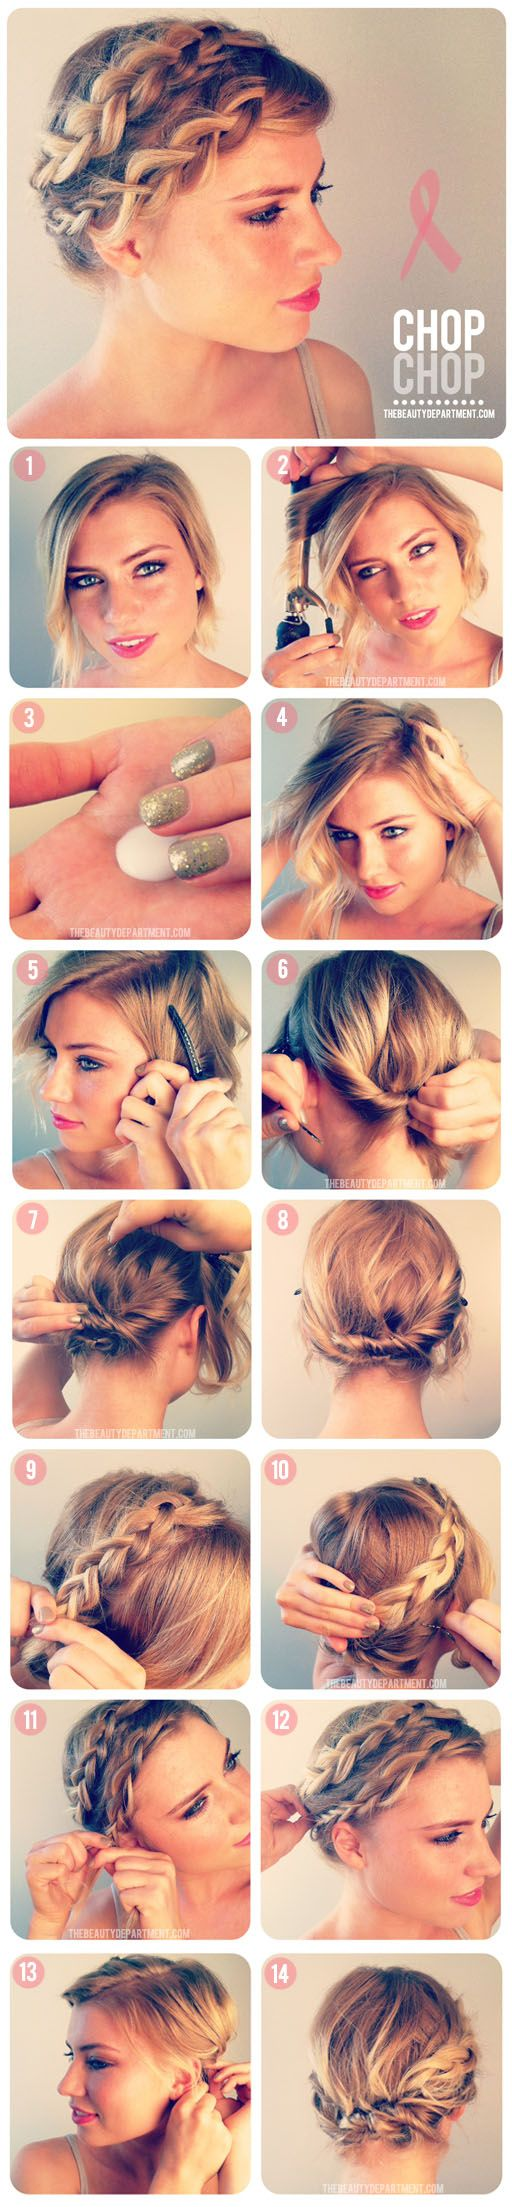 Great Styling Ideas for Short Hairstyles 2017 Bobby_Pins_Make_Crown_Braid_4